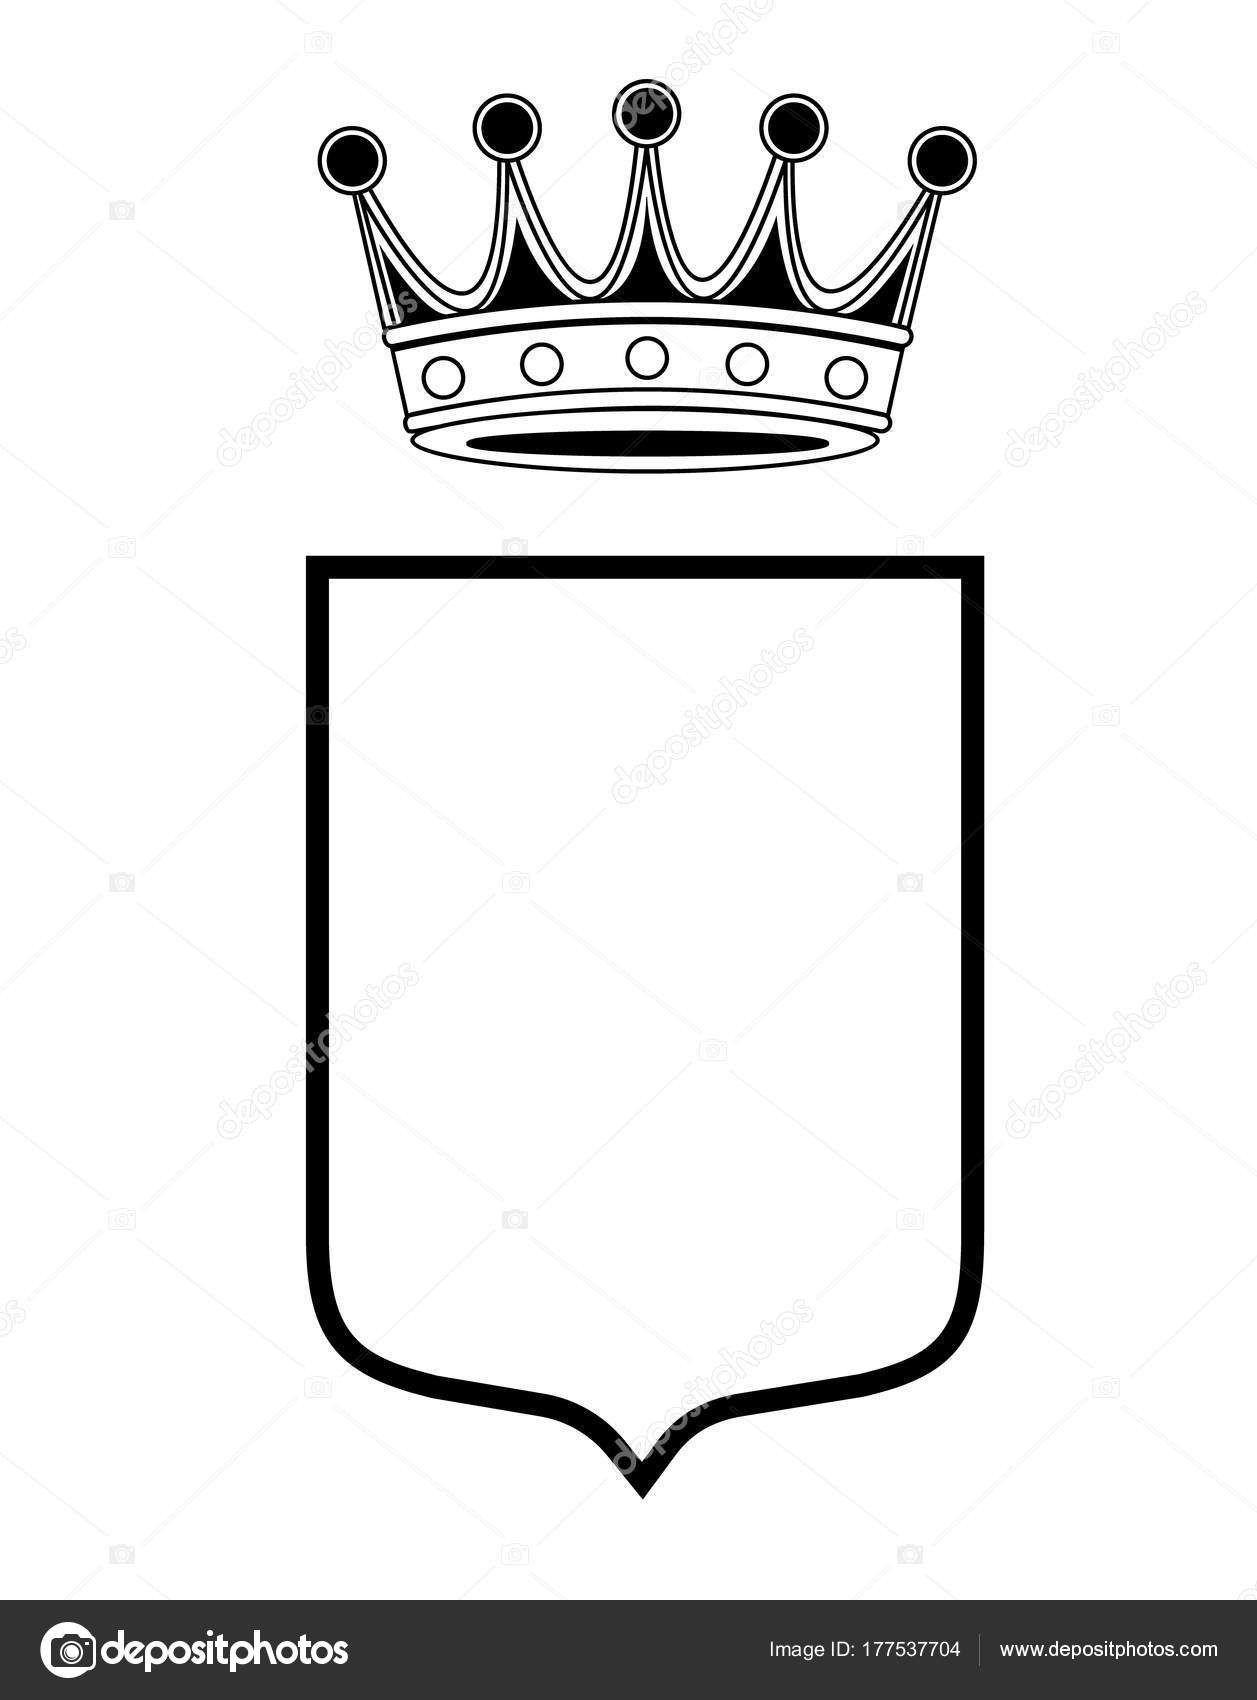 Coat Of Arms Template Vector At Getdrawings